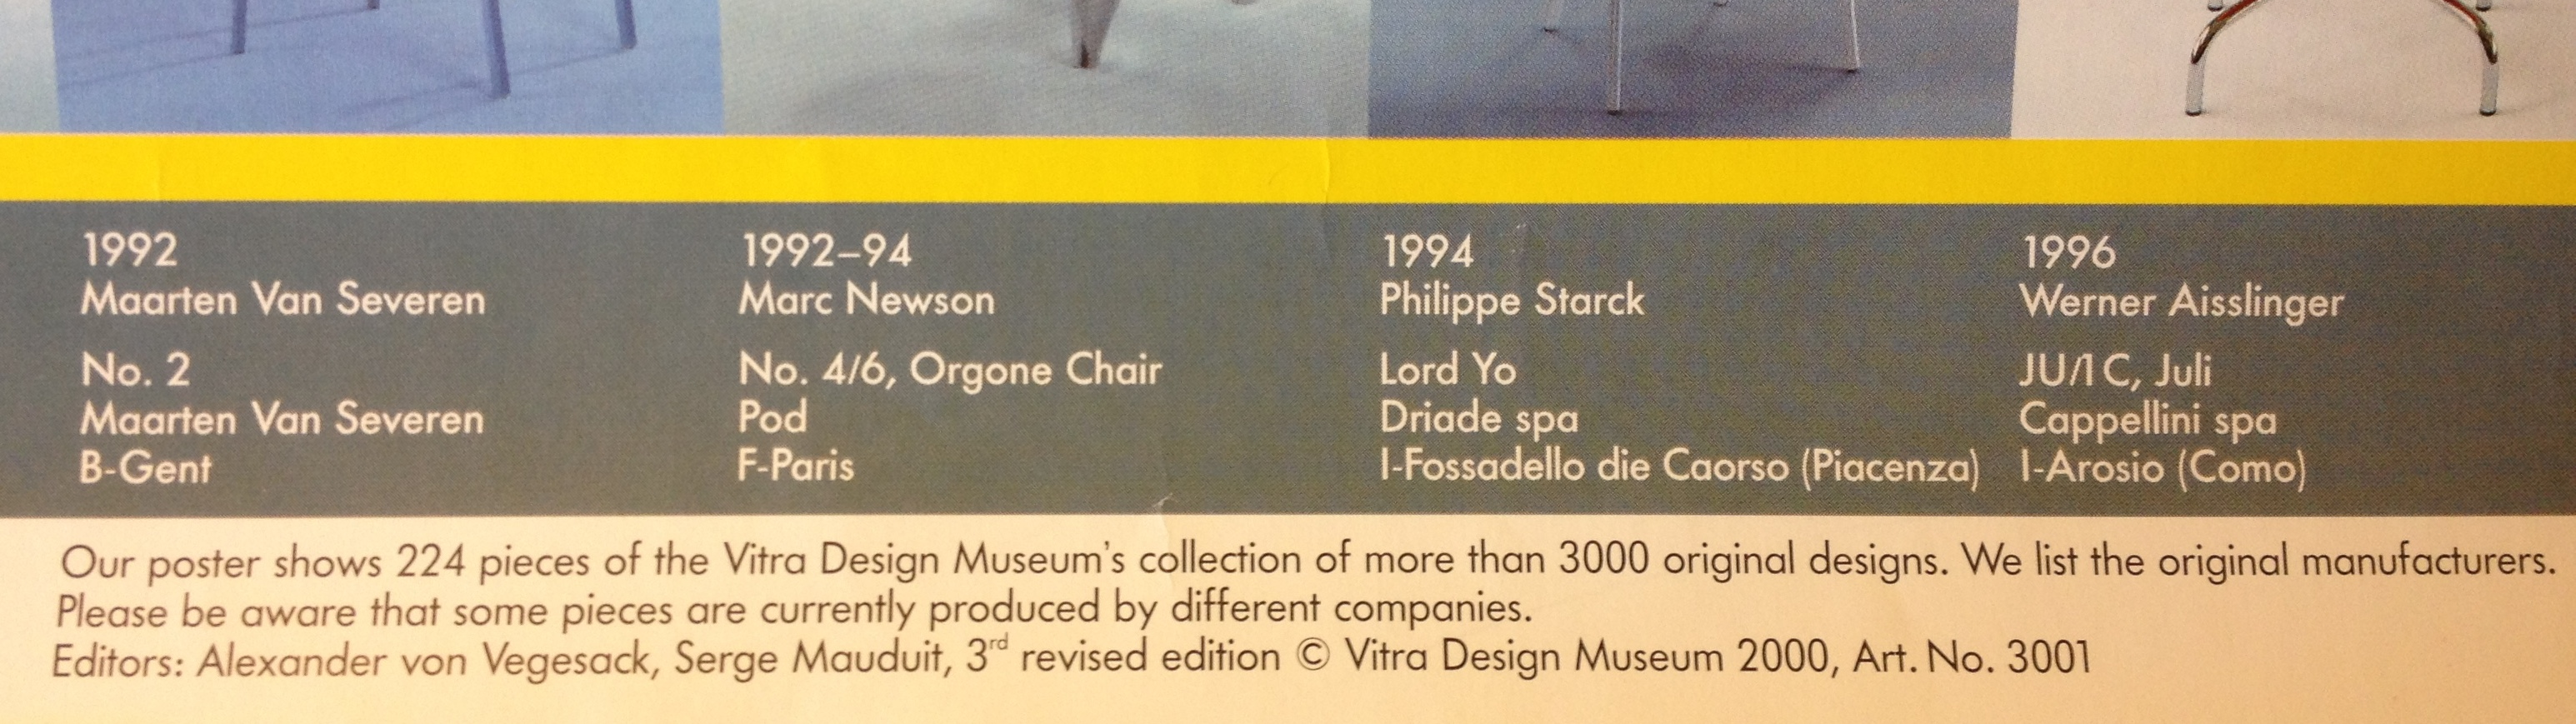 Poster vitra design museum - Poster From The Collection Of Liz Farrelly